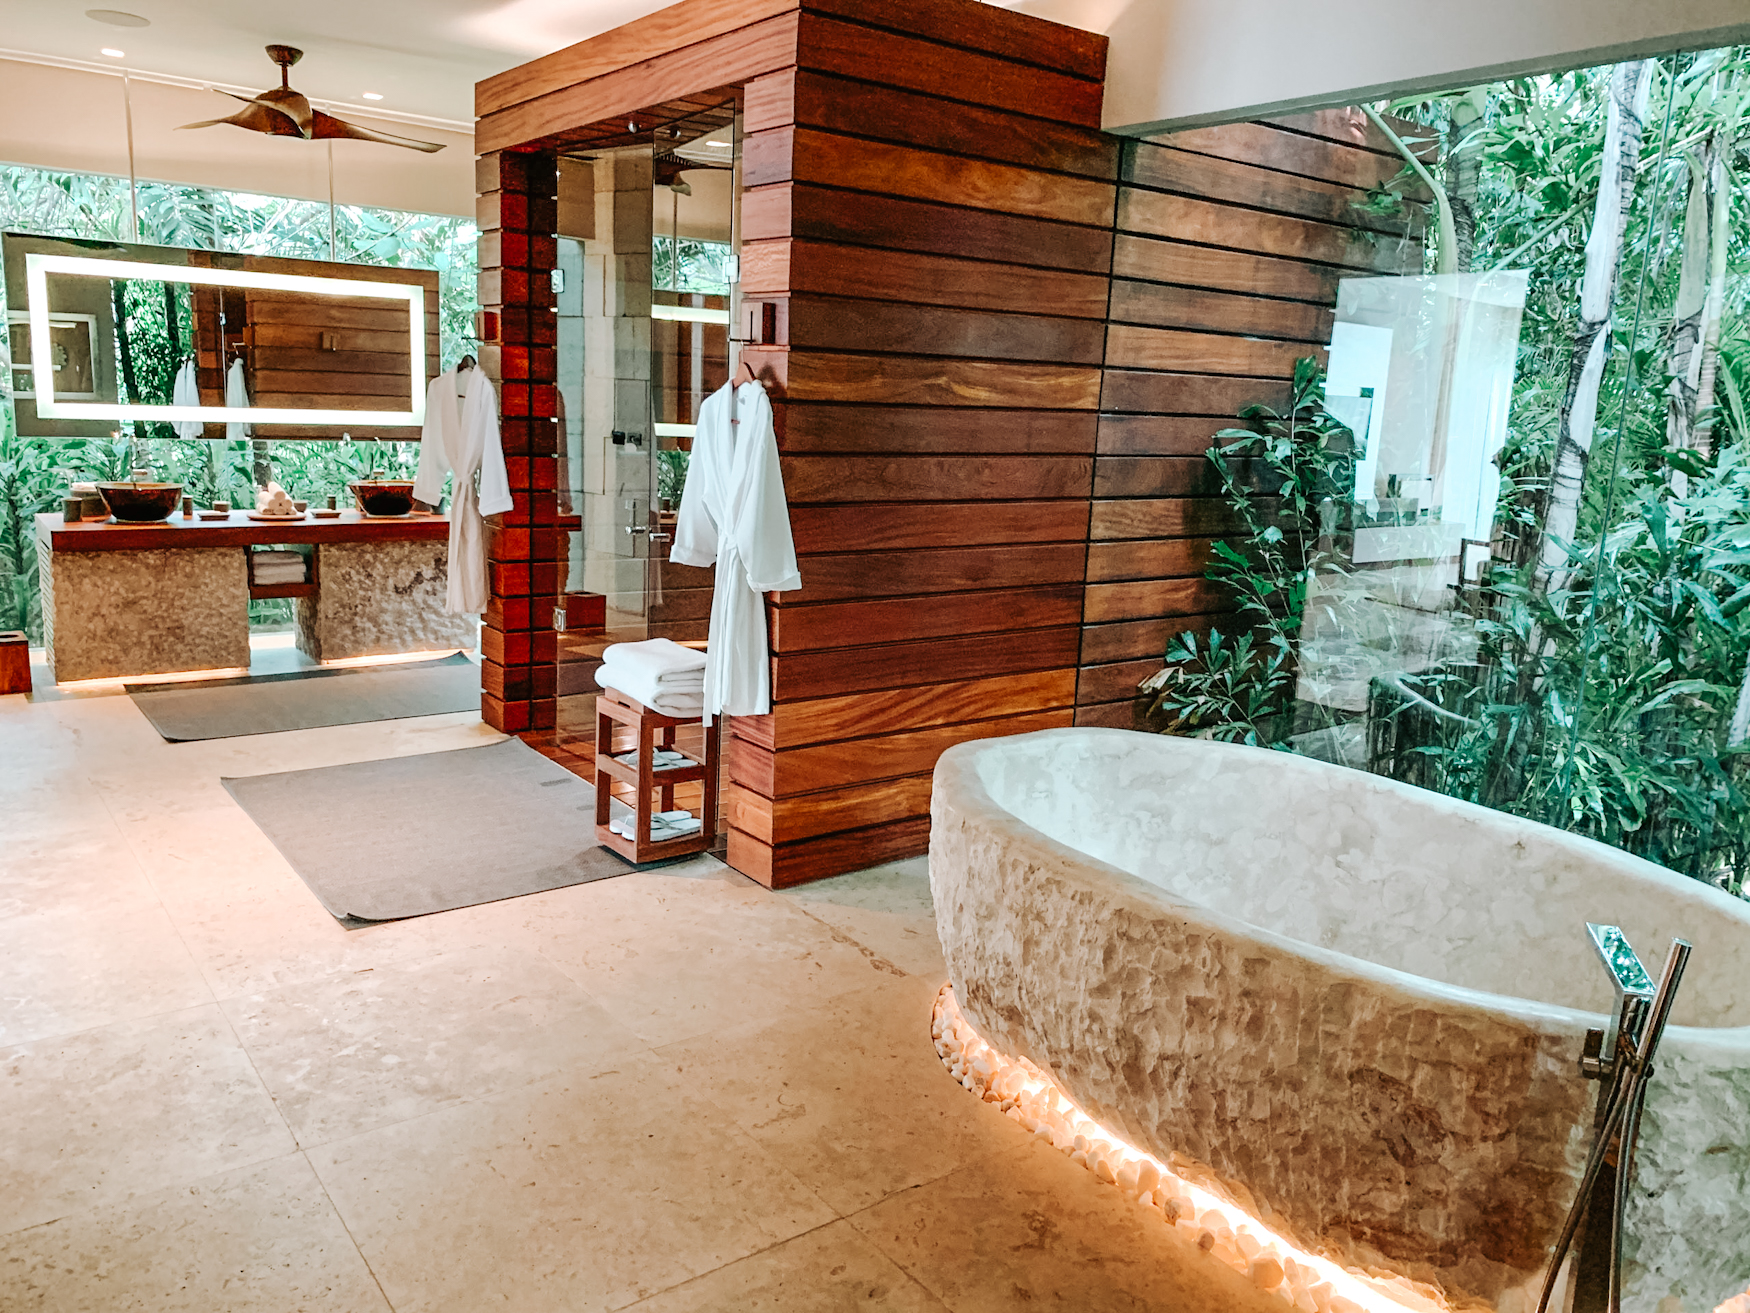 Chable Yucatan Bathroom